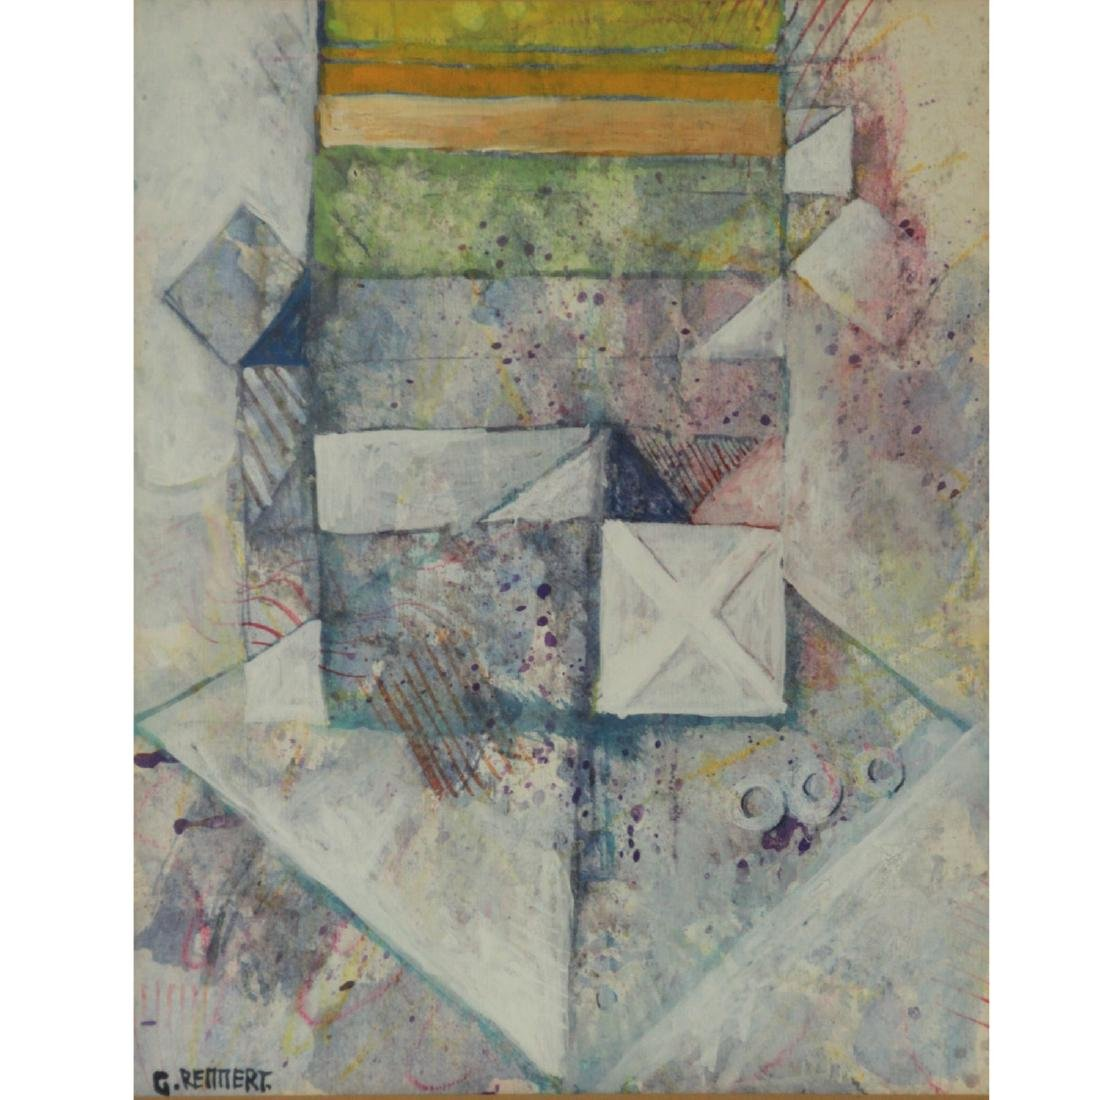 Gershon Rennert (1929-2010) - Abstract, Mixed Media on